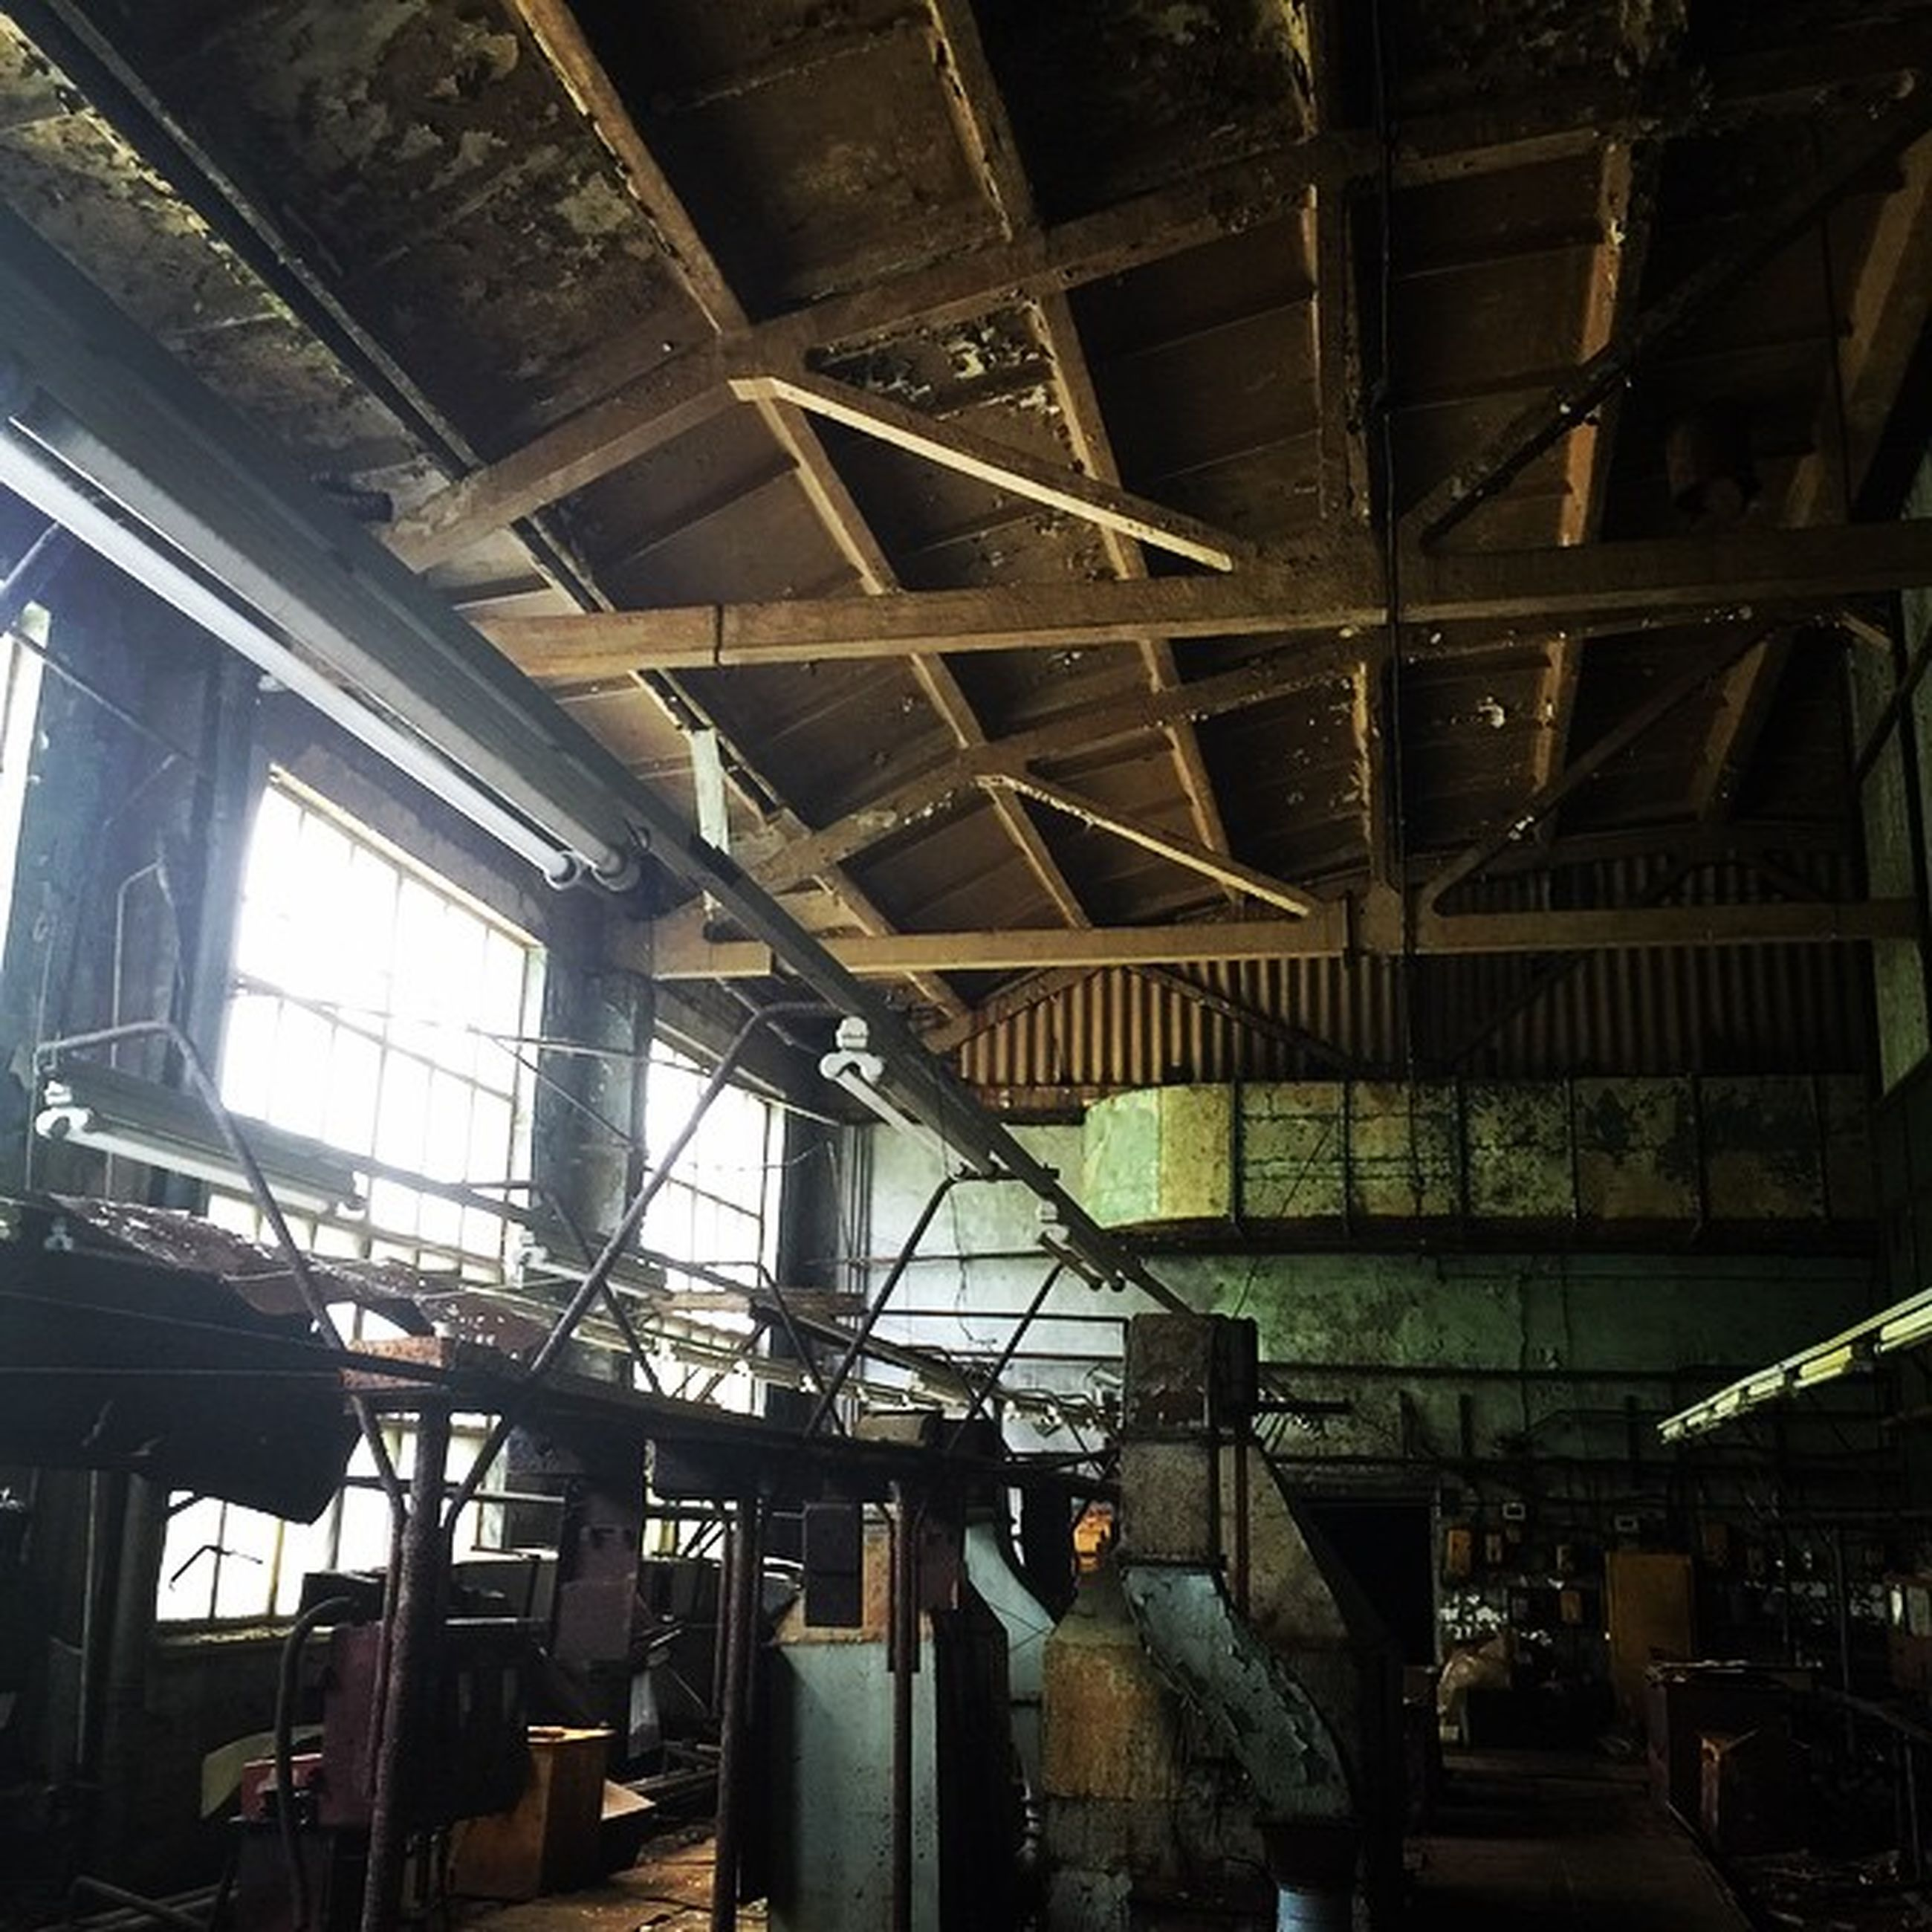 indoors, ceiling, interior, architecture, built structure, window, abandoned, low angle view, old, chair, damaged, obsolete, glass - material, absence, empty, skylight, no people, day, run-down, deterioration